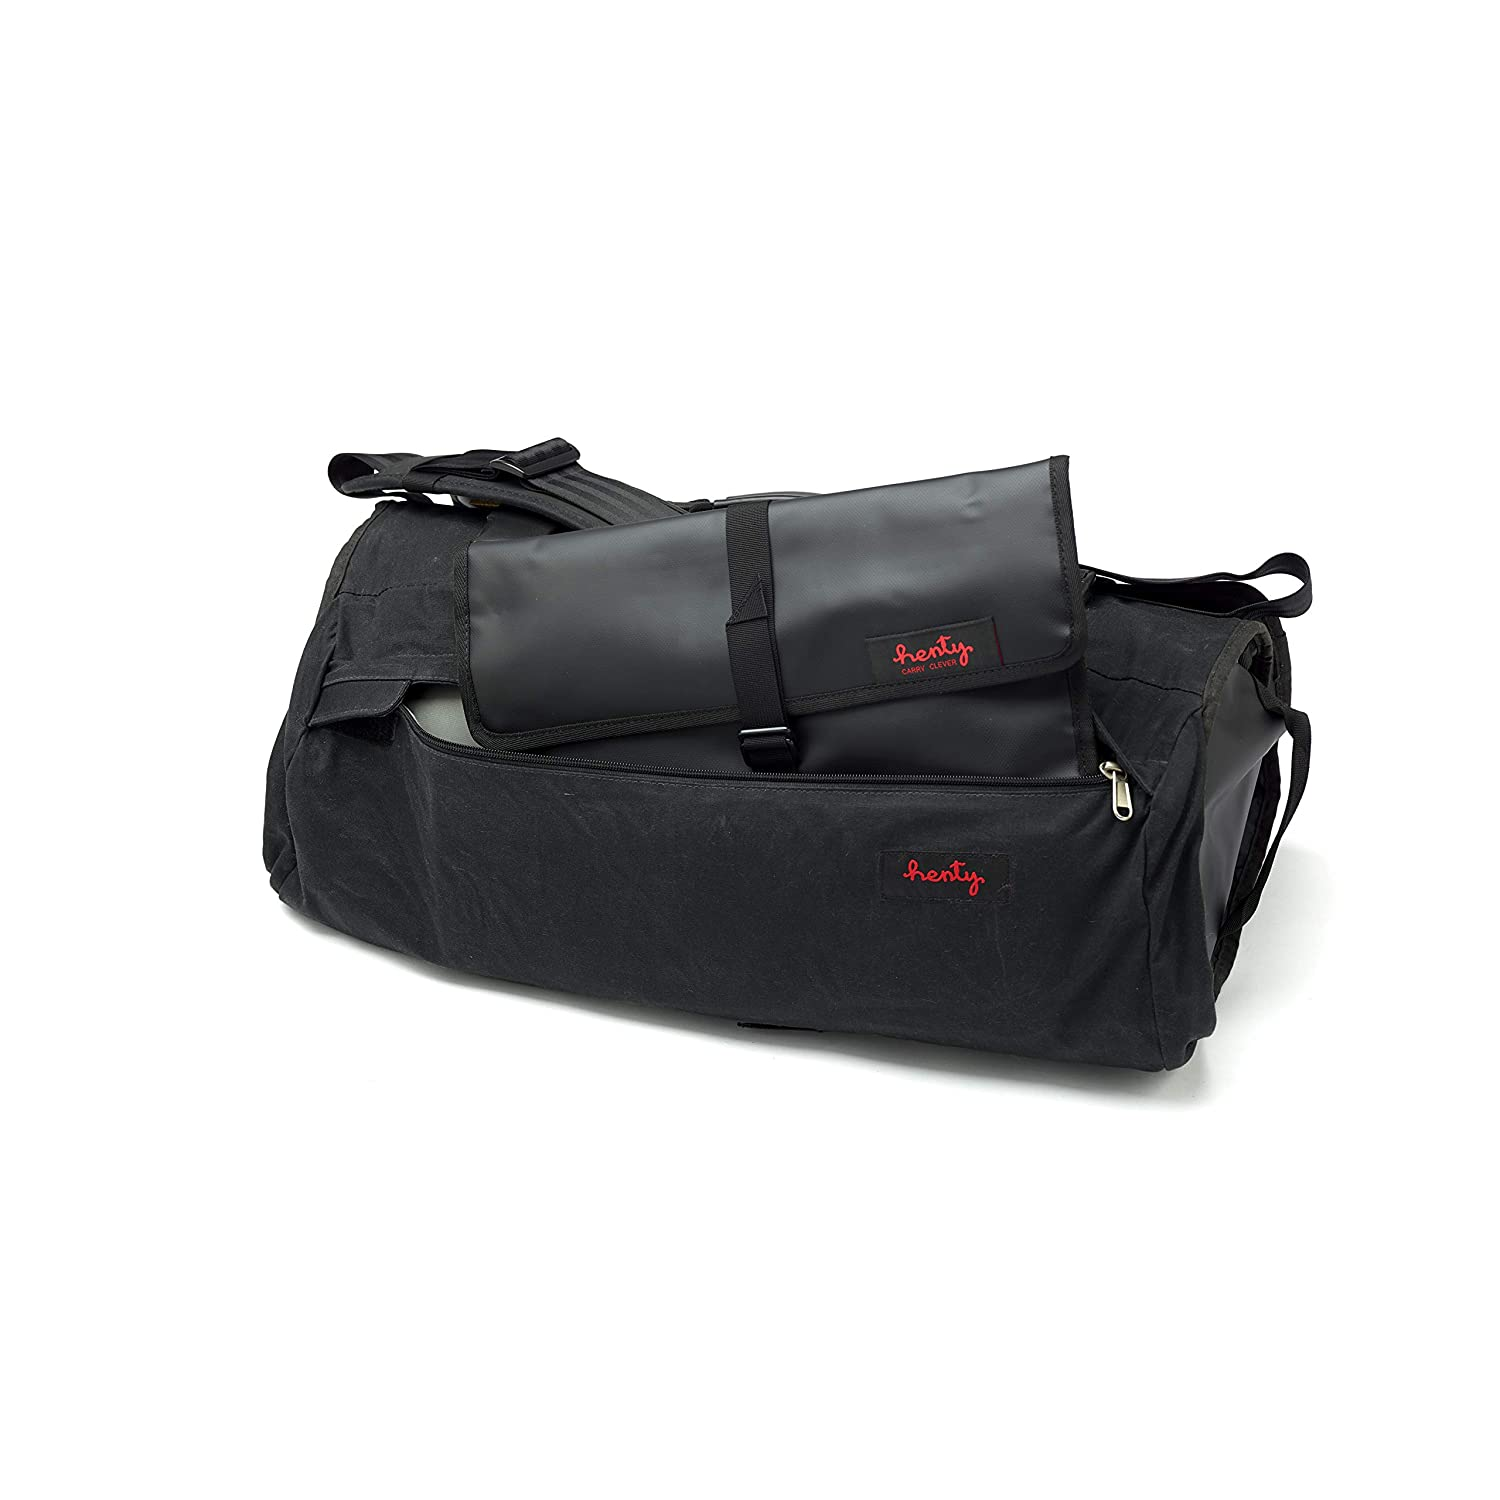 Co-Pilot Messenger Canvas Black